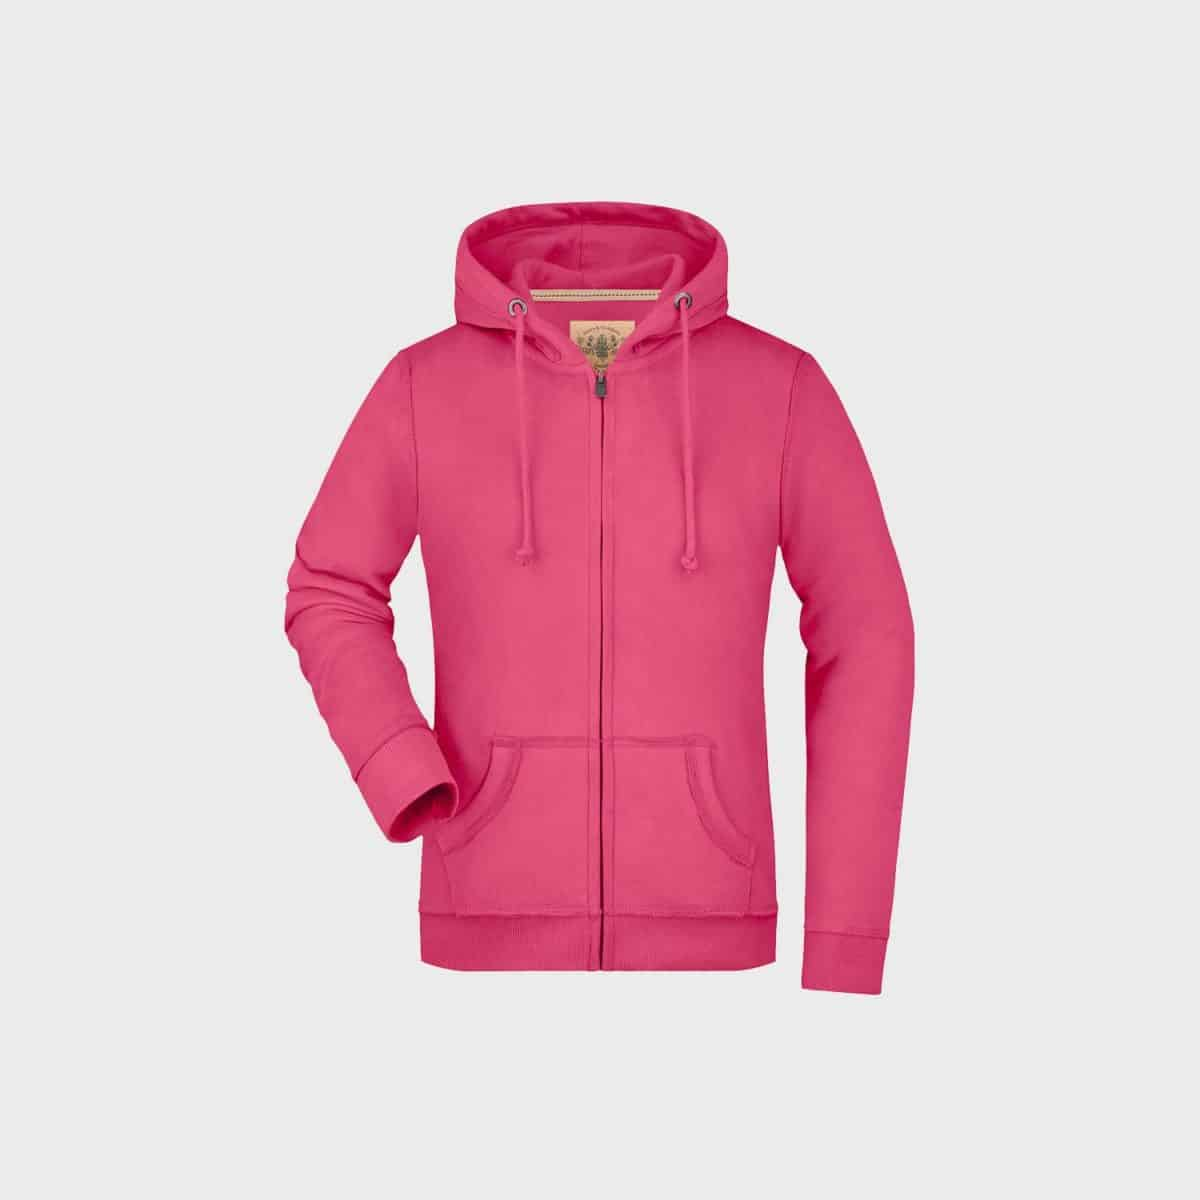 vintage-kapuzenjacke-hooded-sweat-jacket-damen-pink-kaufen-besticken_stickmanufaktur